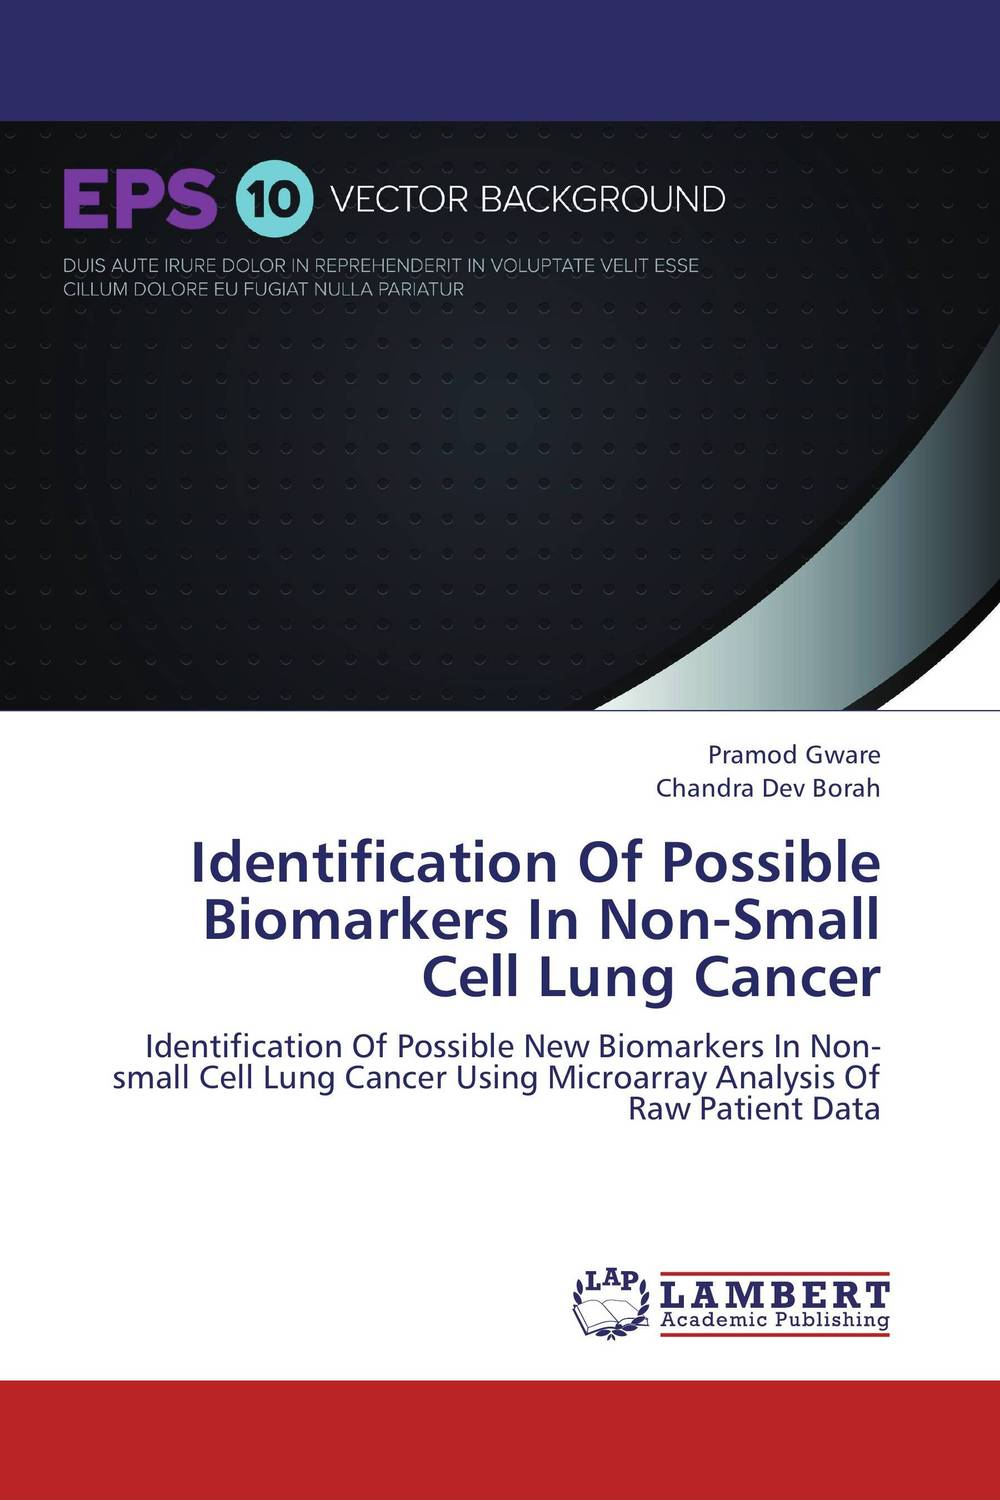 Identification Of Possible Biomarkers In Non-Small Cell Lung Cancer rajveer kaur amarjit singh gill and paramjit kaur khinda diagnostic biomarkers in periodontics